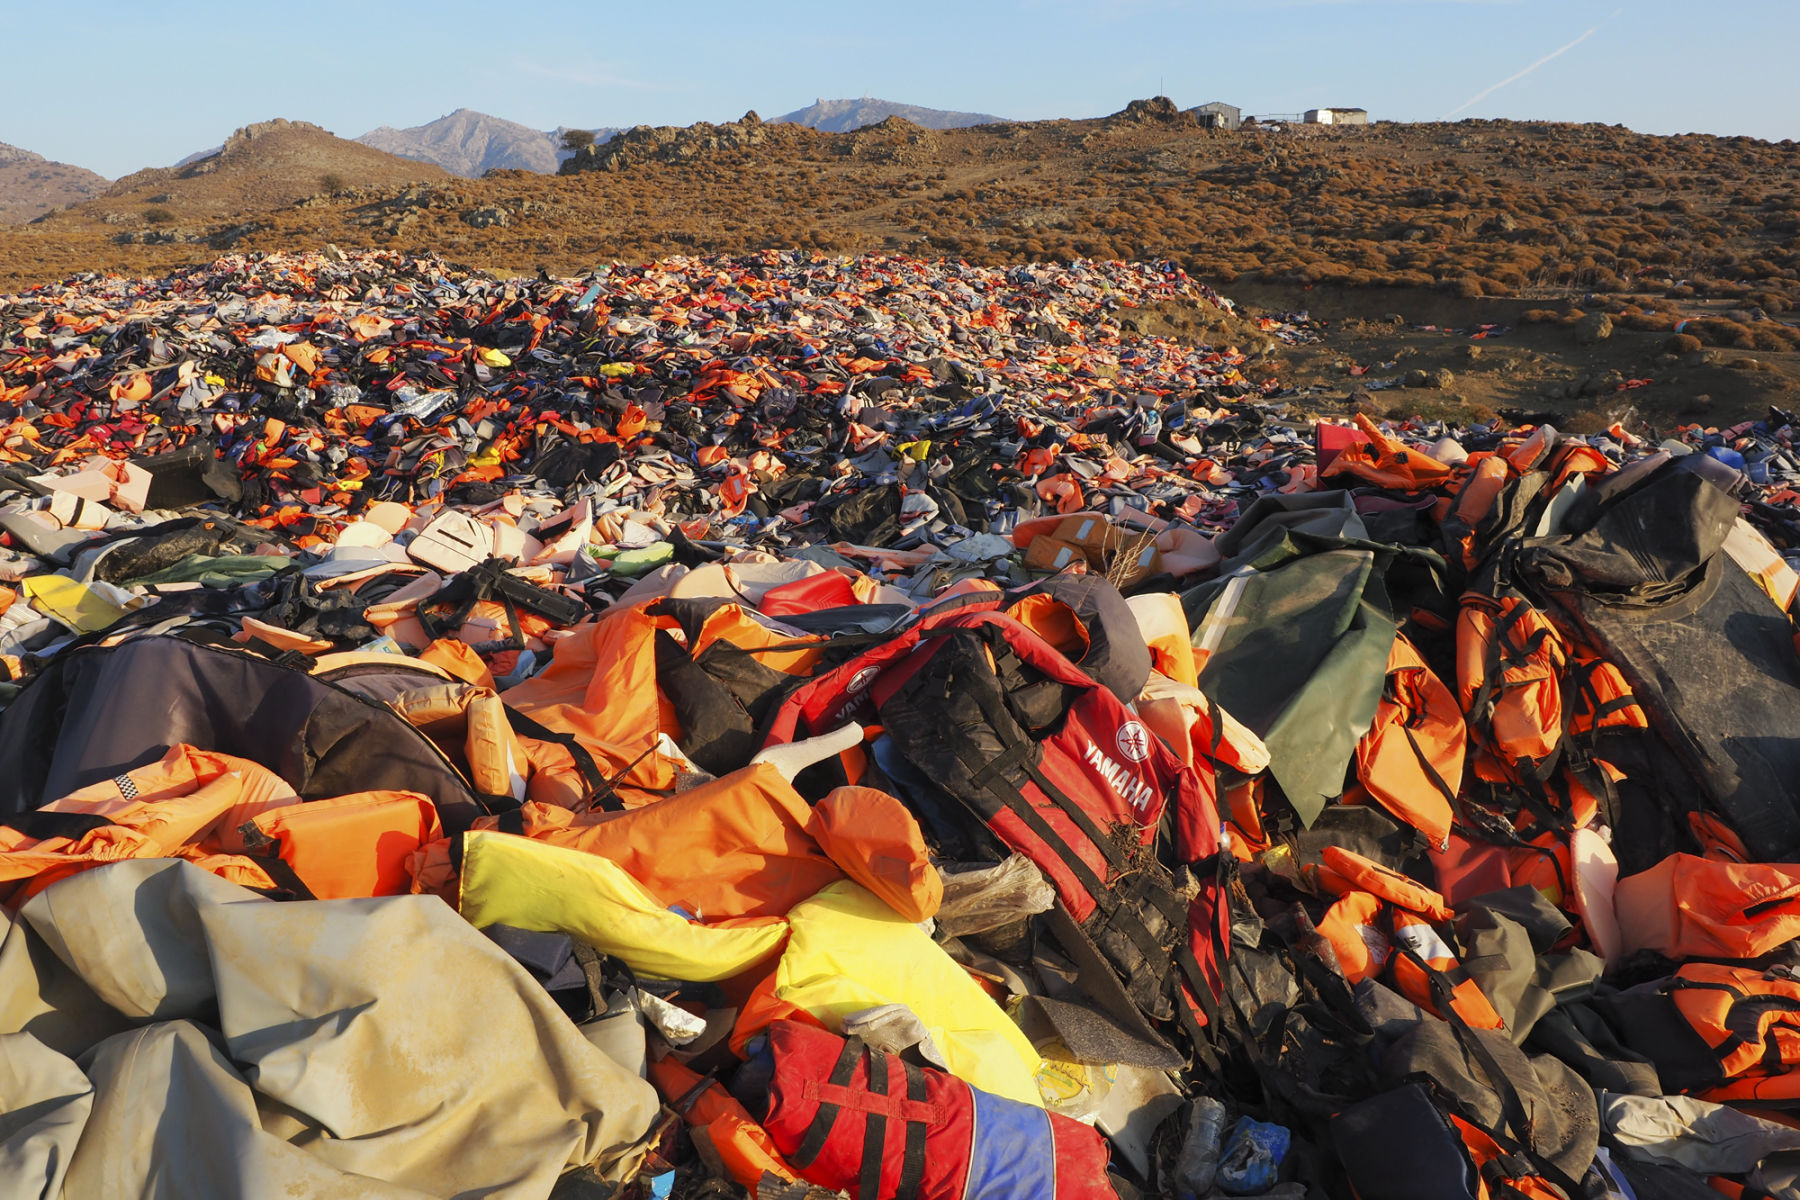 Close to one million lifejackets  - www.lesvosolidarity.org - 2016